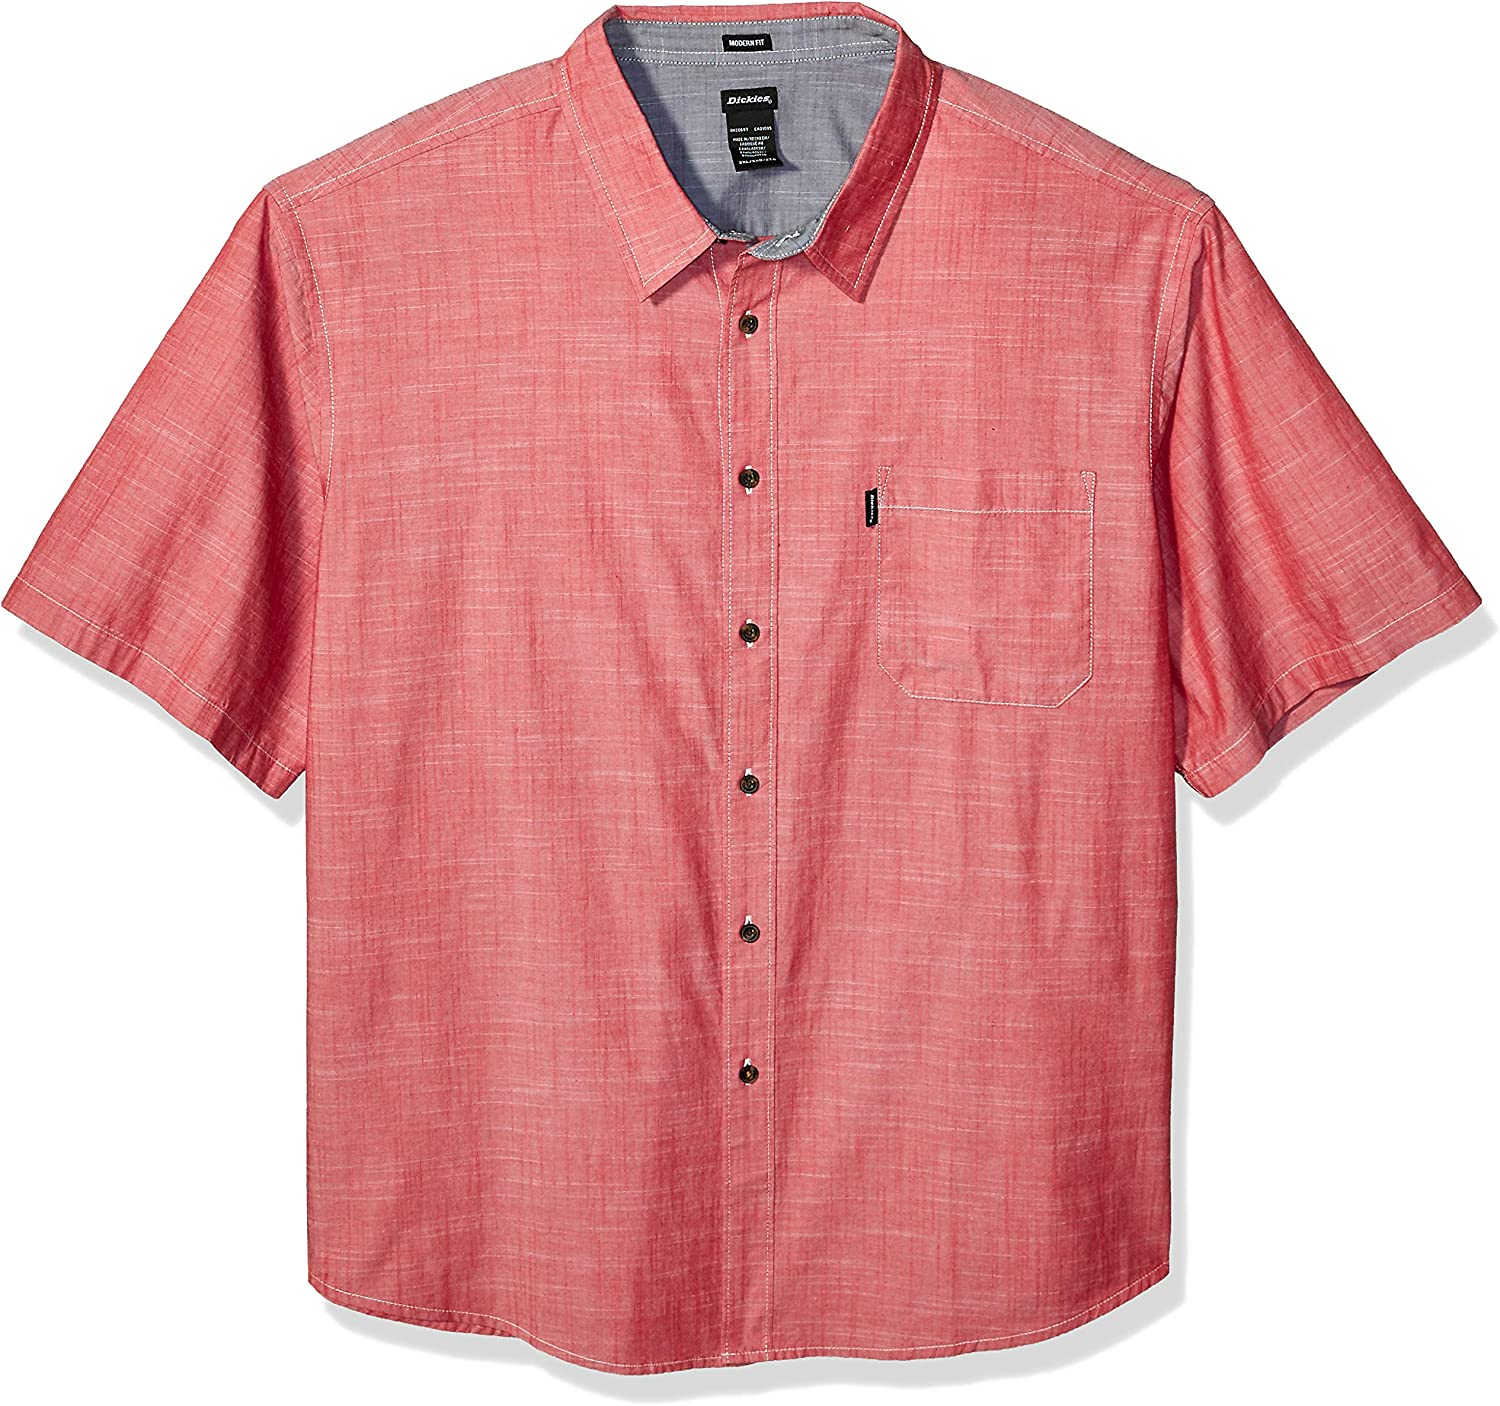 Short Sleeve Chambray Shirt with contrast collar